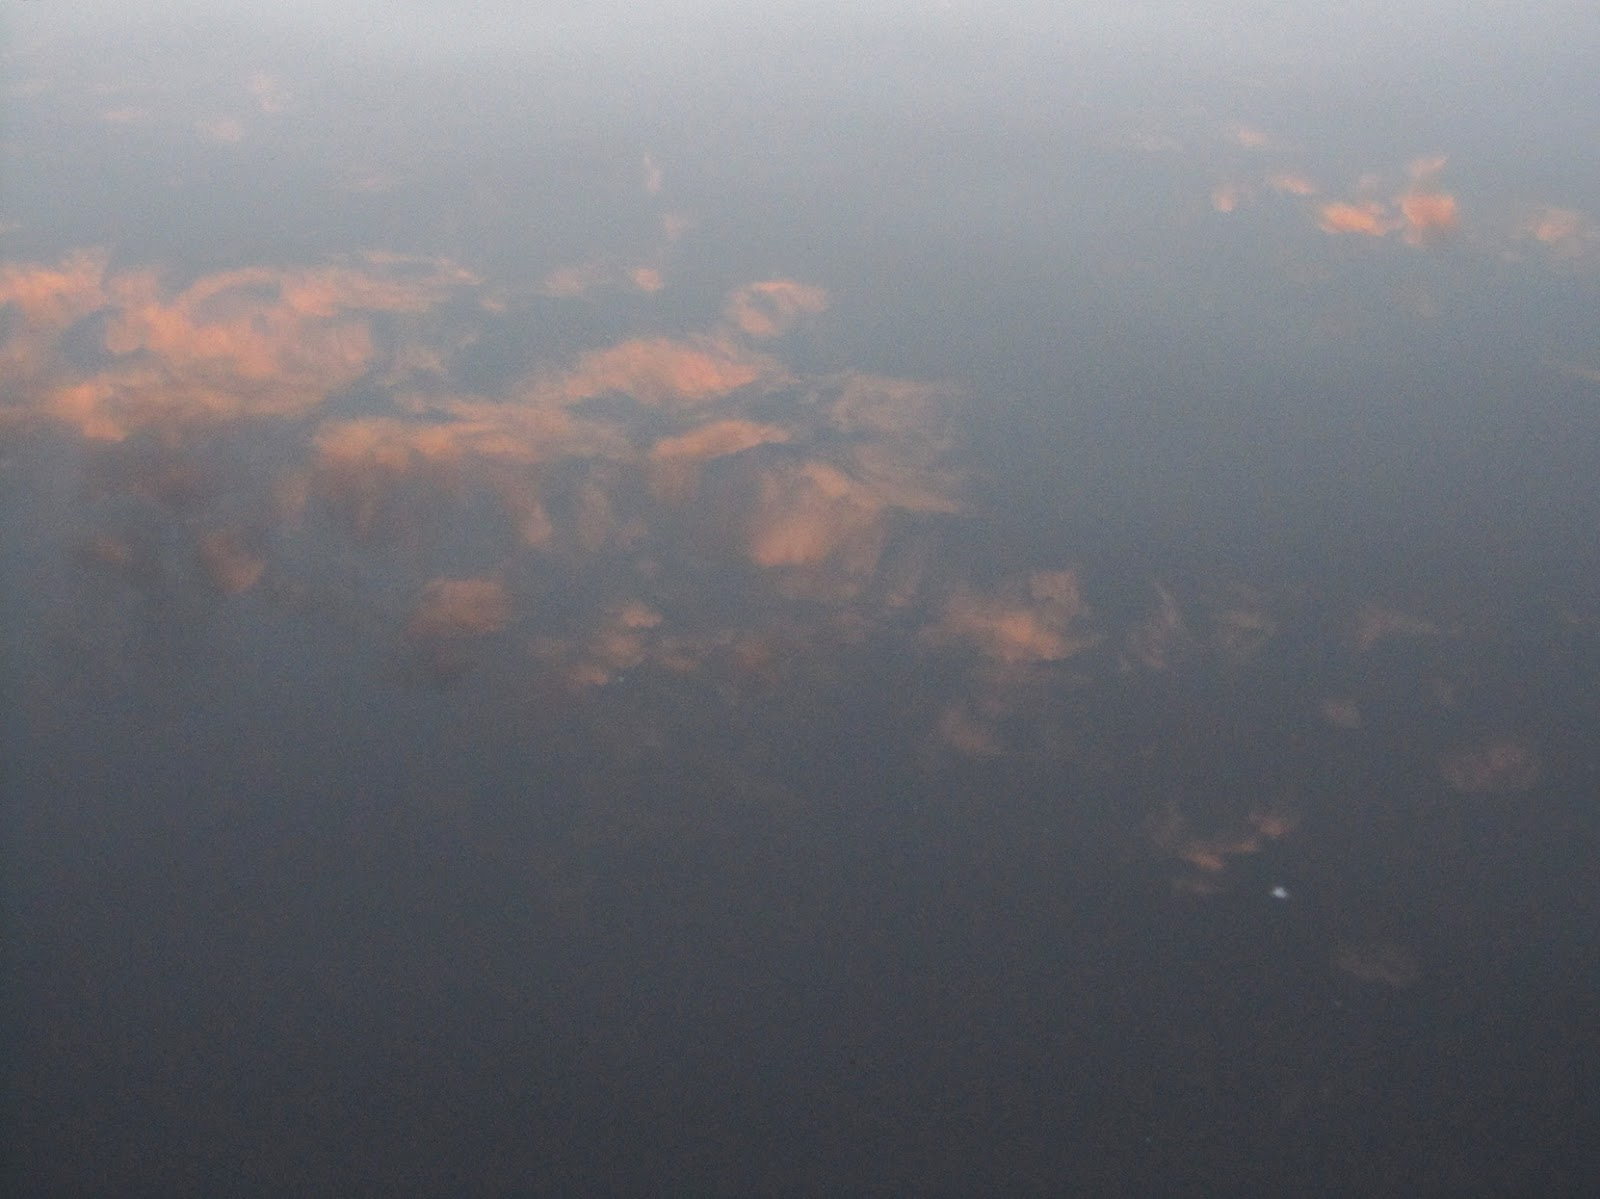 reflection of pink clouds in water